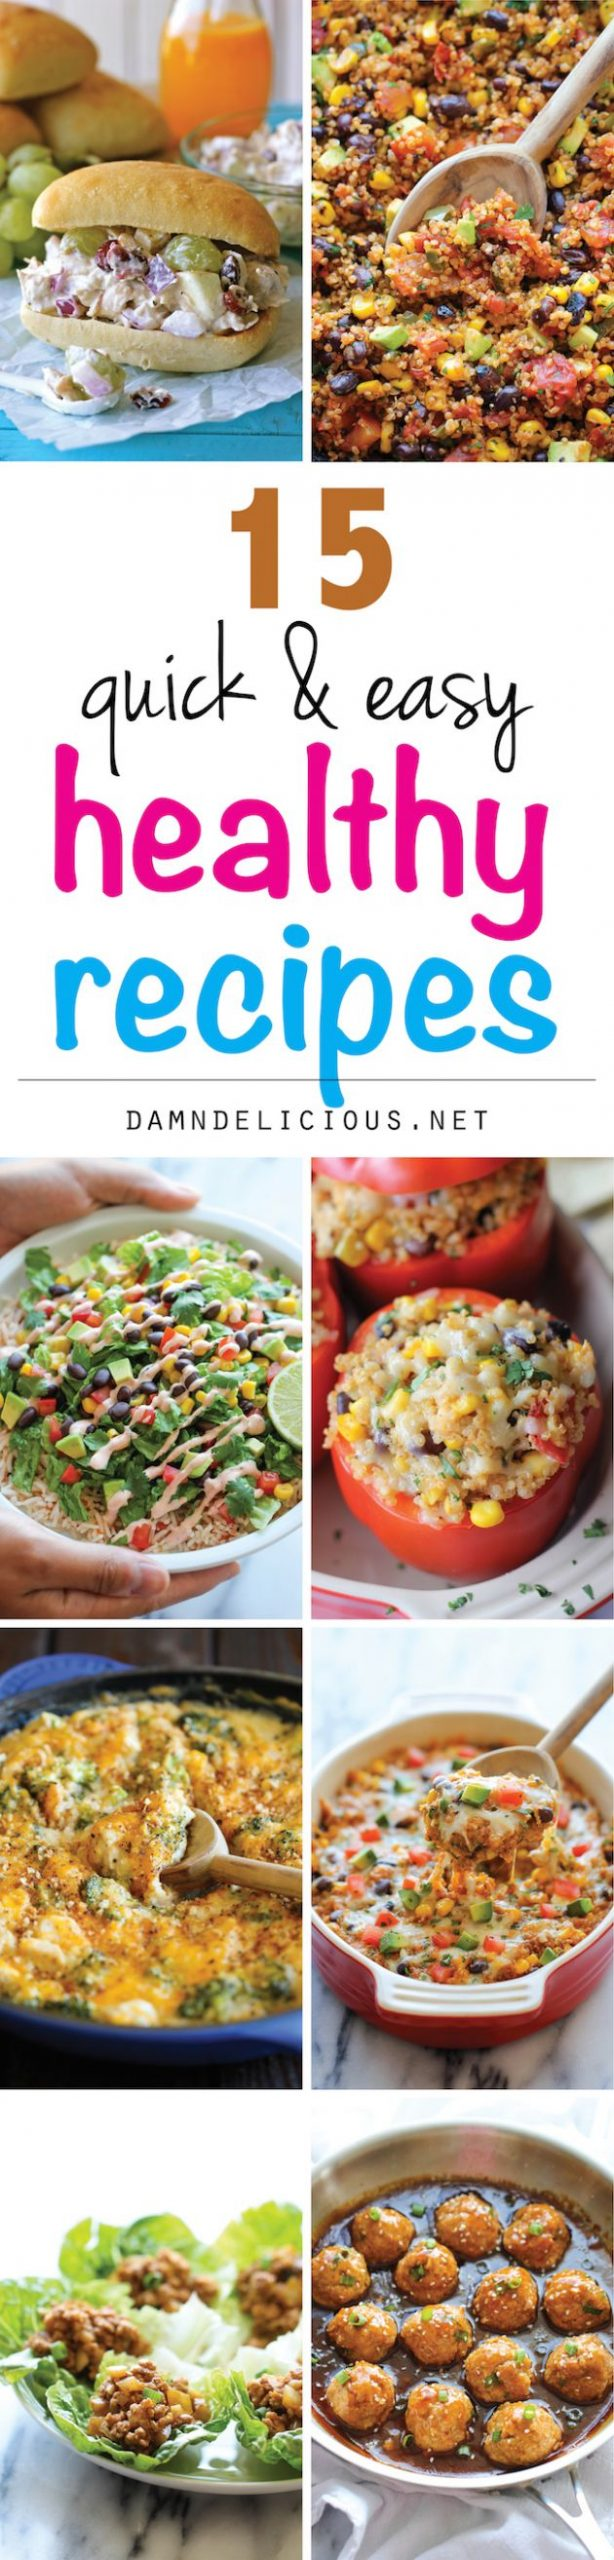 10 Quick and Easy Healthy Recipes - Damn Delicious - Food Recipes Easy Healthy